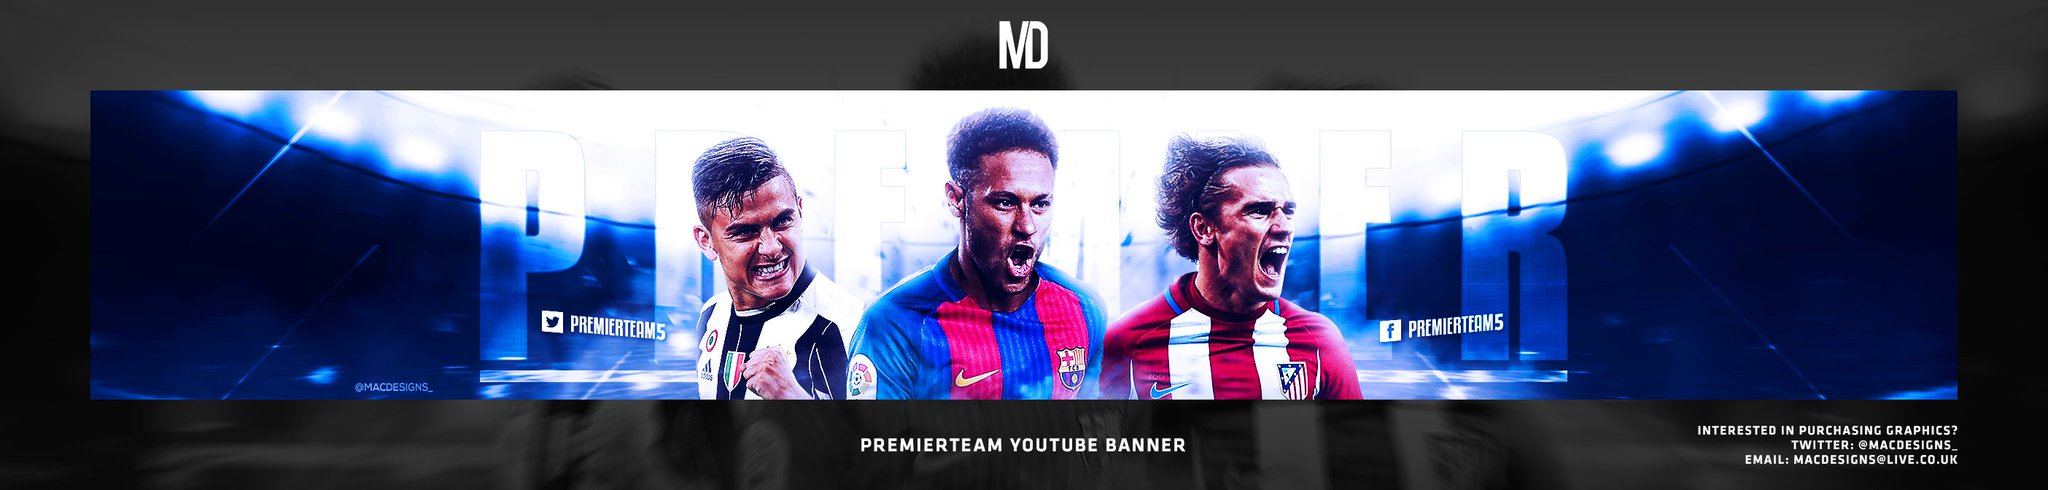 George On Twitter Youtube Banner For Premierteam All Feedback And